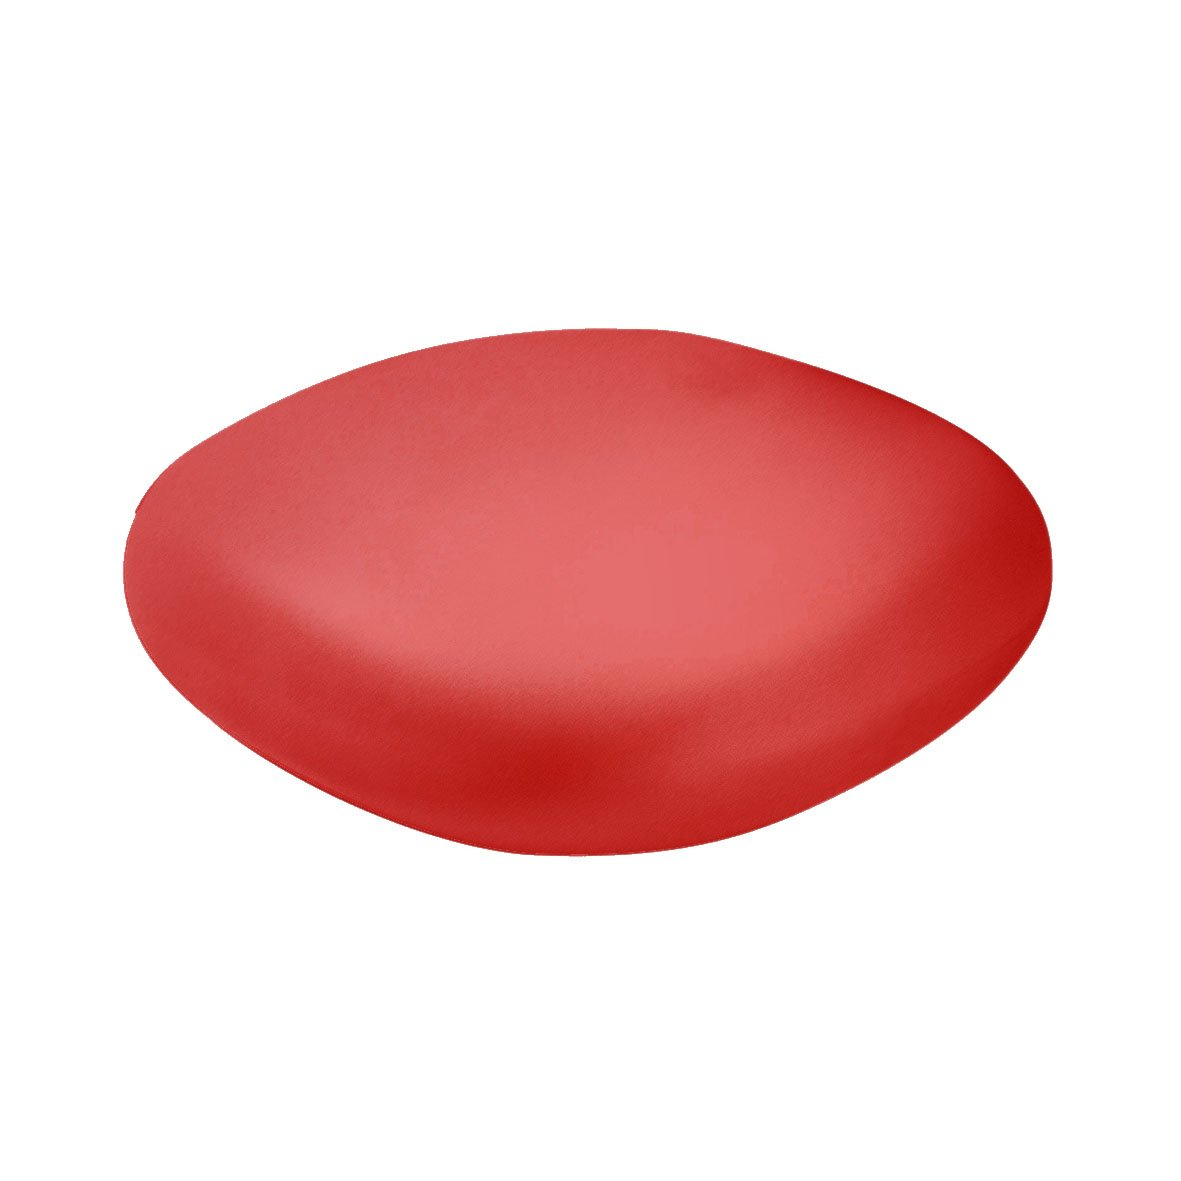 Slide Chubby Low Pouf - Small table Flame Red